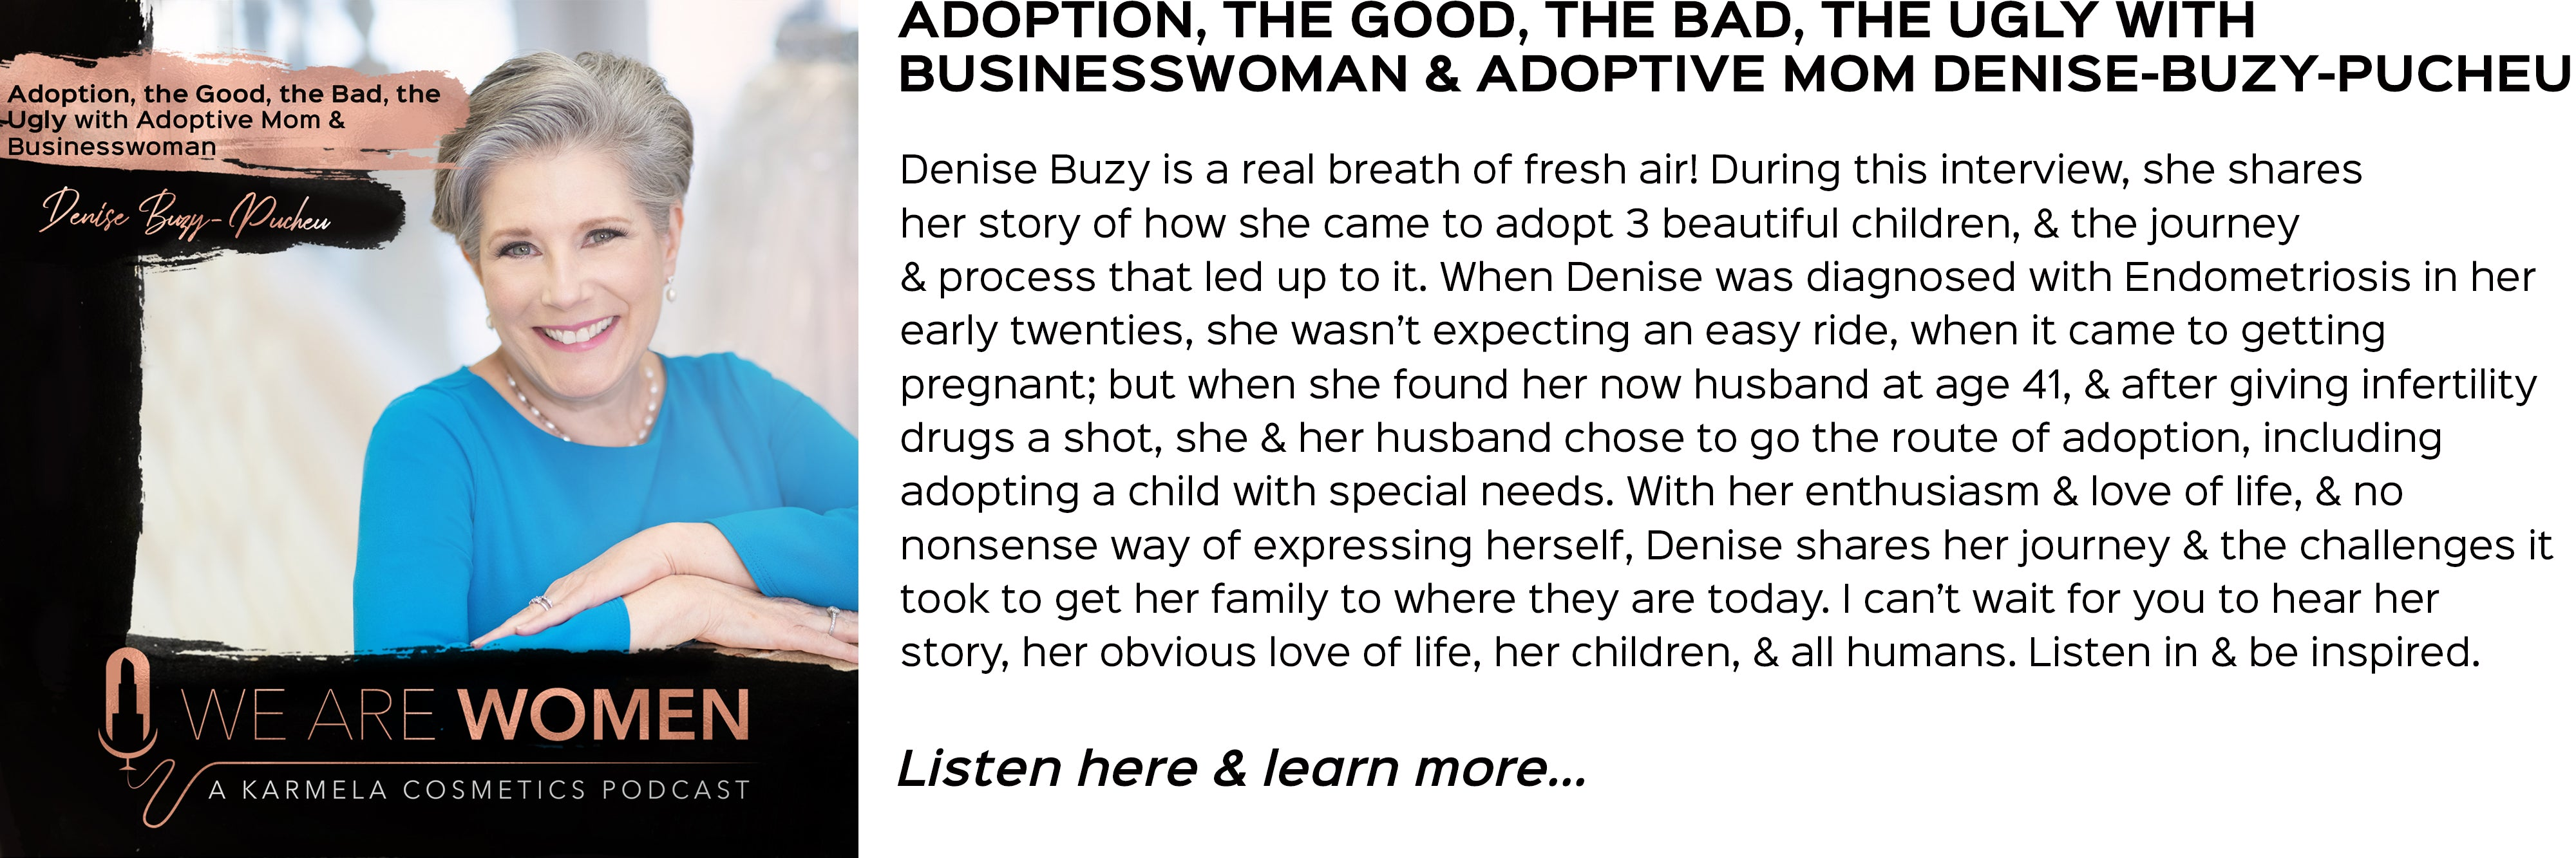 Denise Buzy, Adoption the good, the bad, and the ugly